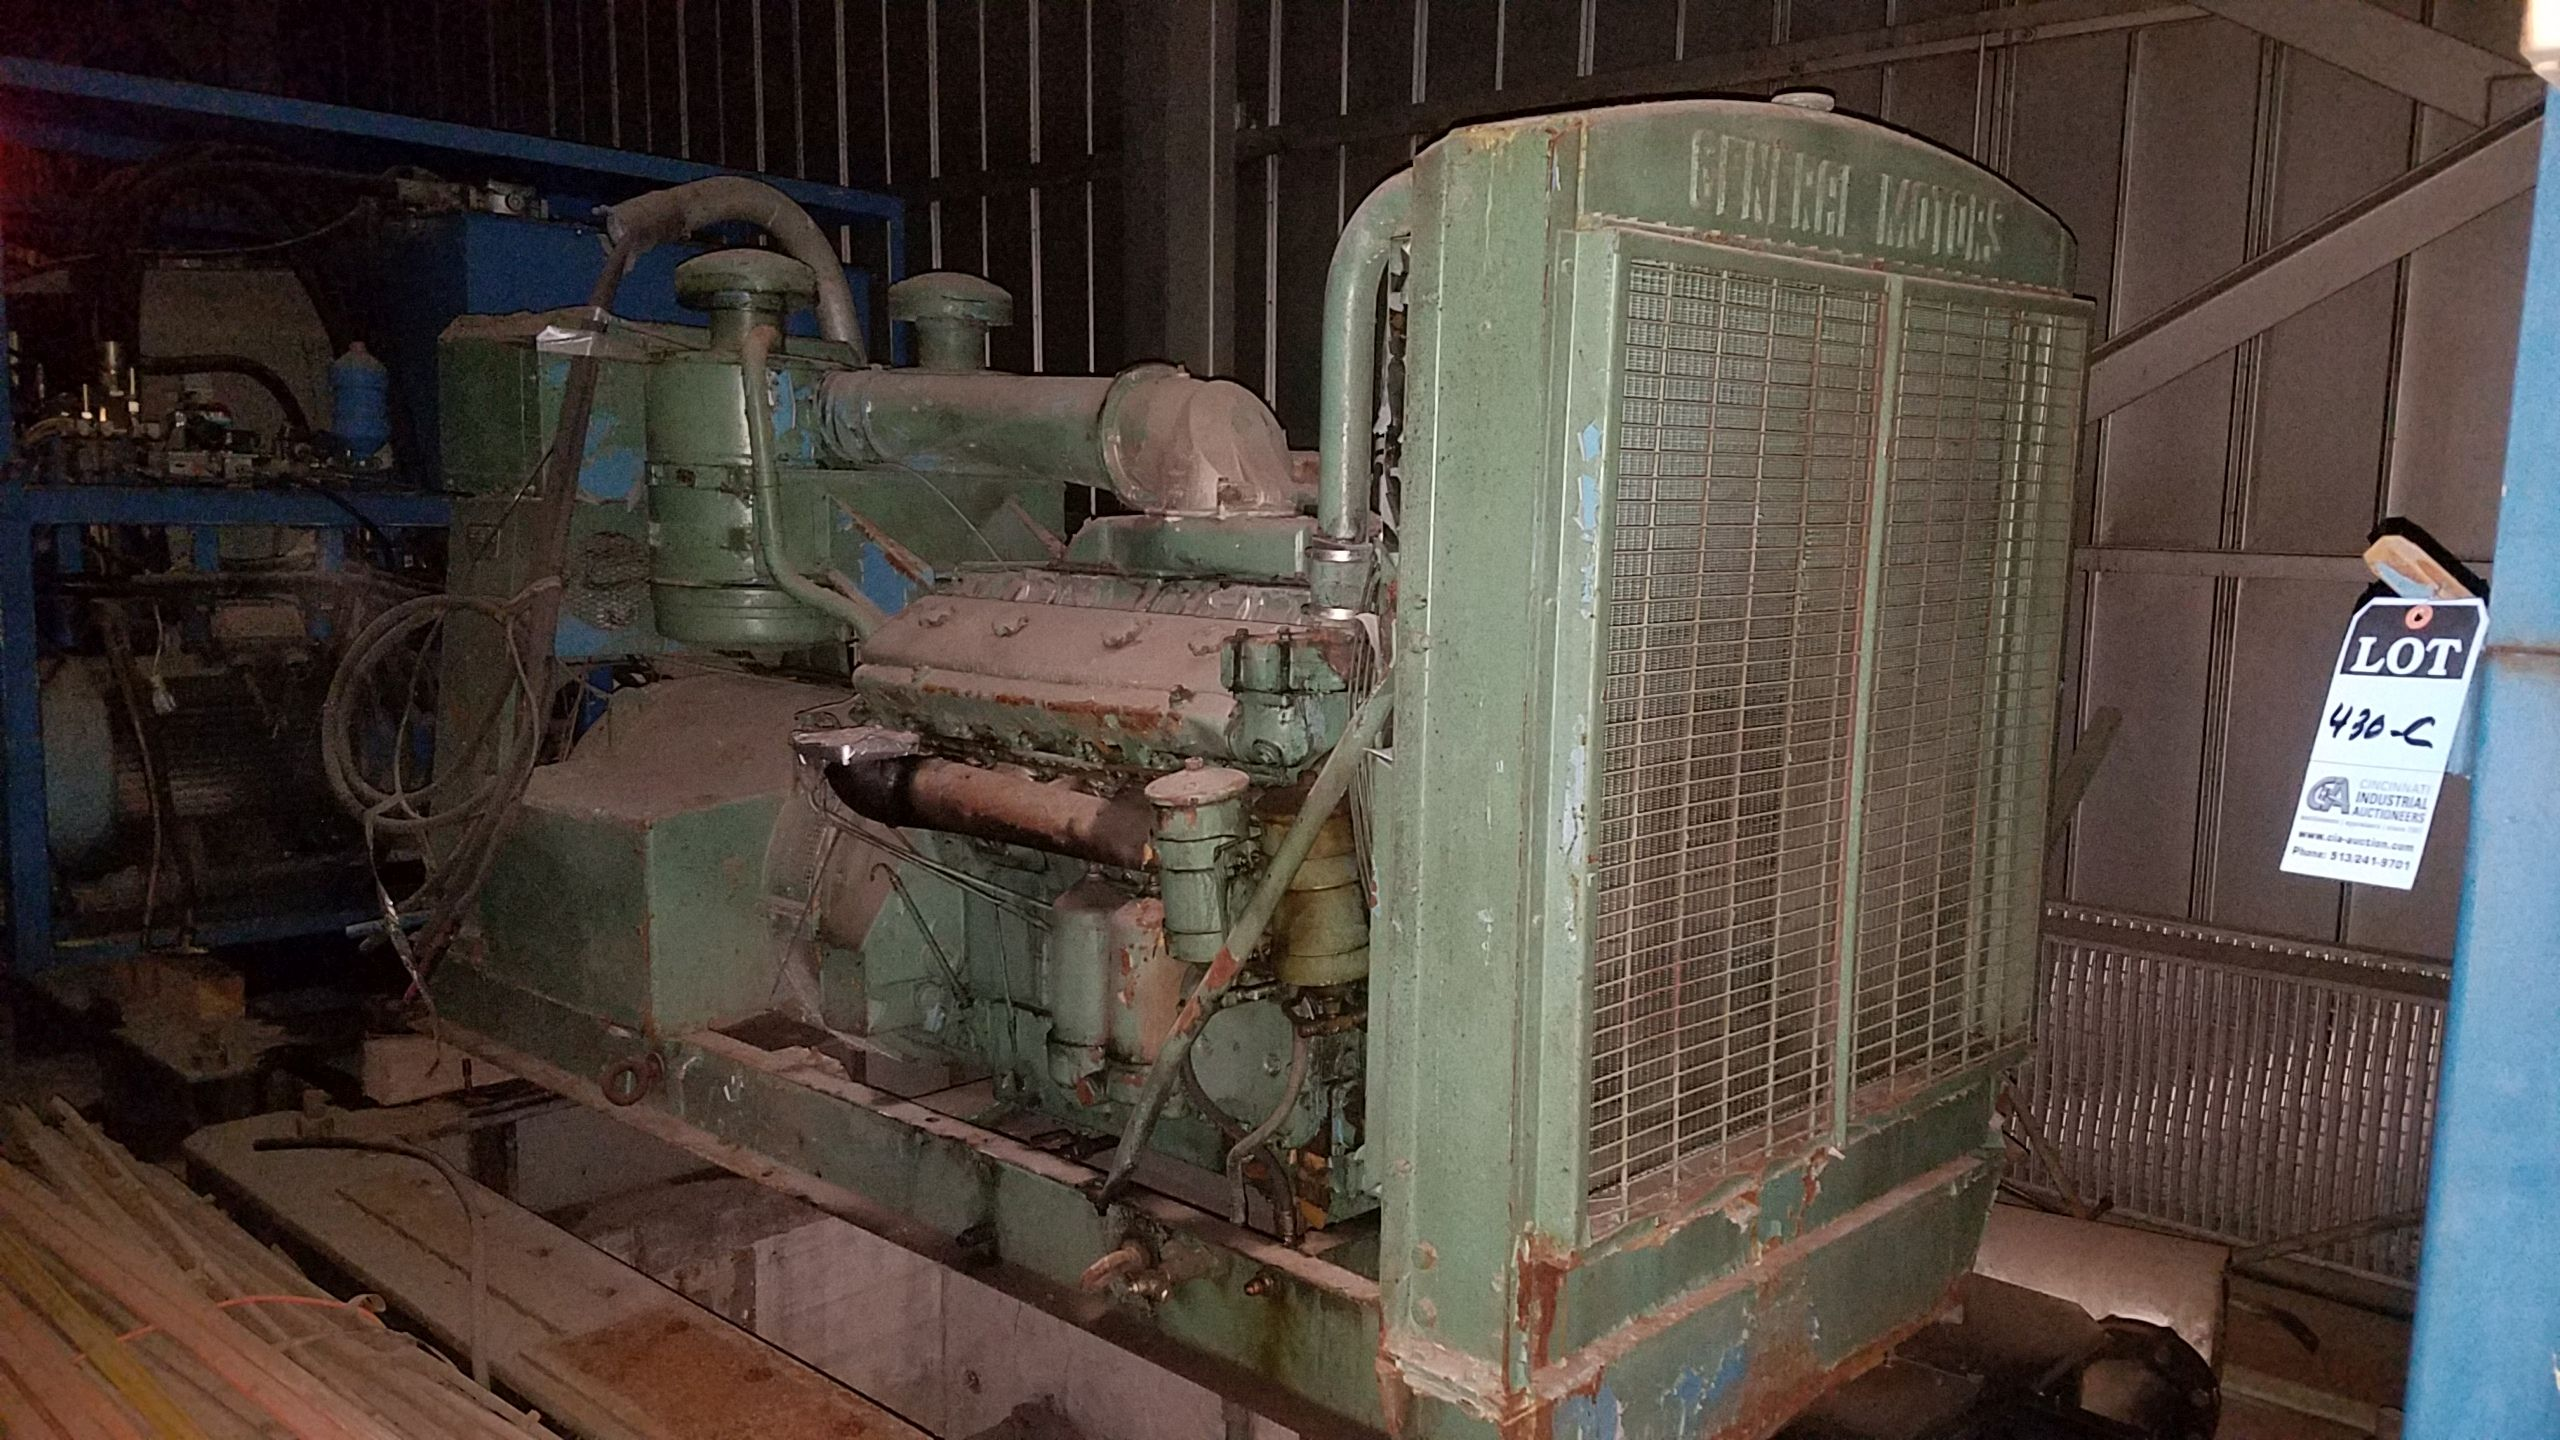 Lot 430D - 300 KW / 375 KVA O'BRIEN ENERGY SERVICES MODEL OB300D-DW63 DIESEL POWERED GENERATOR; S/N G-4504